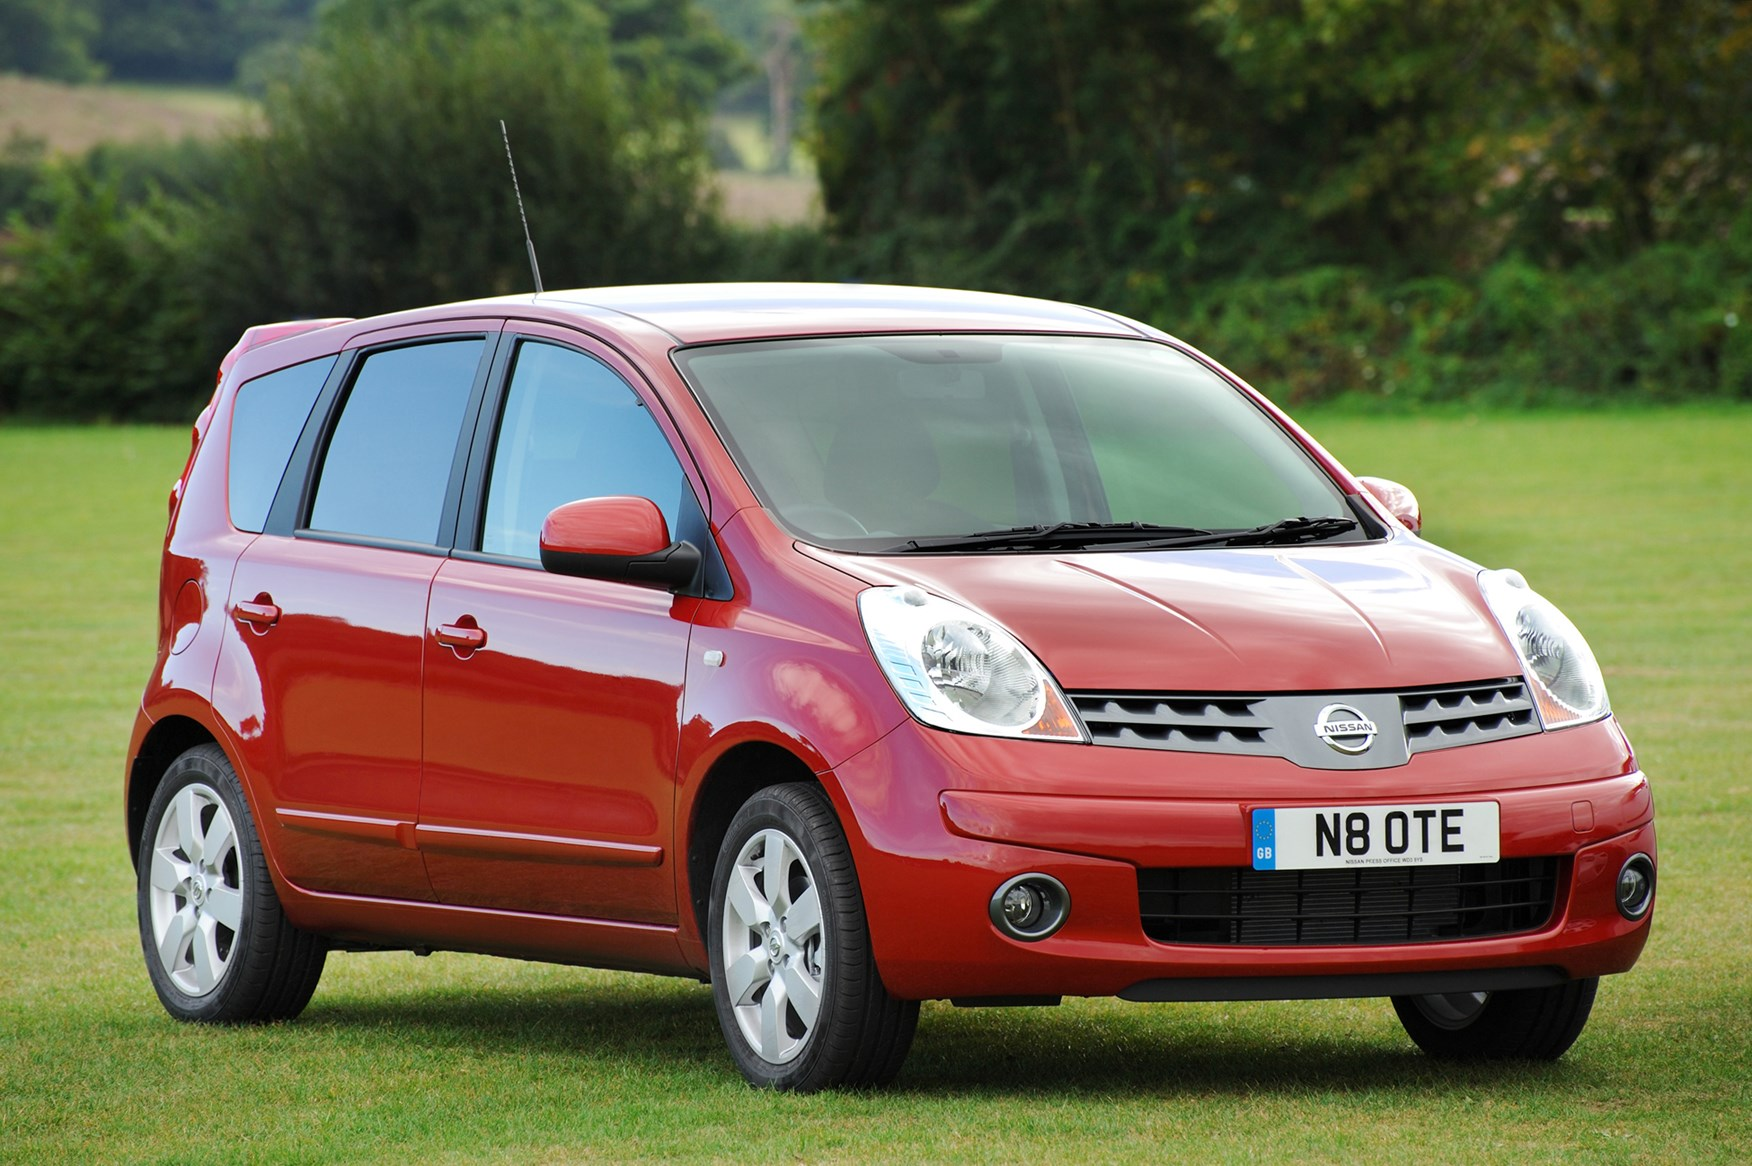 Used Nissan Note Hatchback (2006 - 2013) Practicality | Parkers